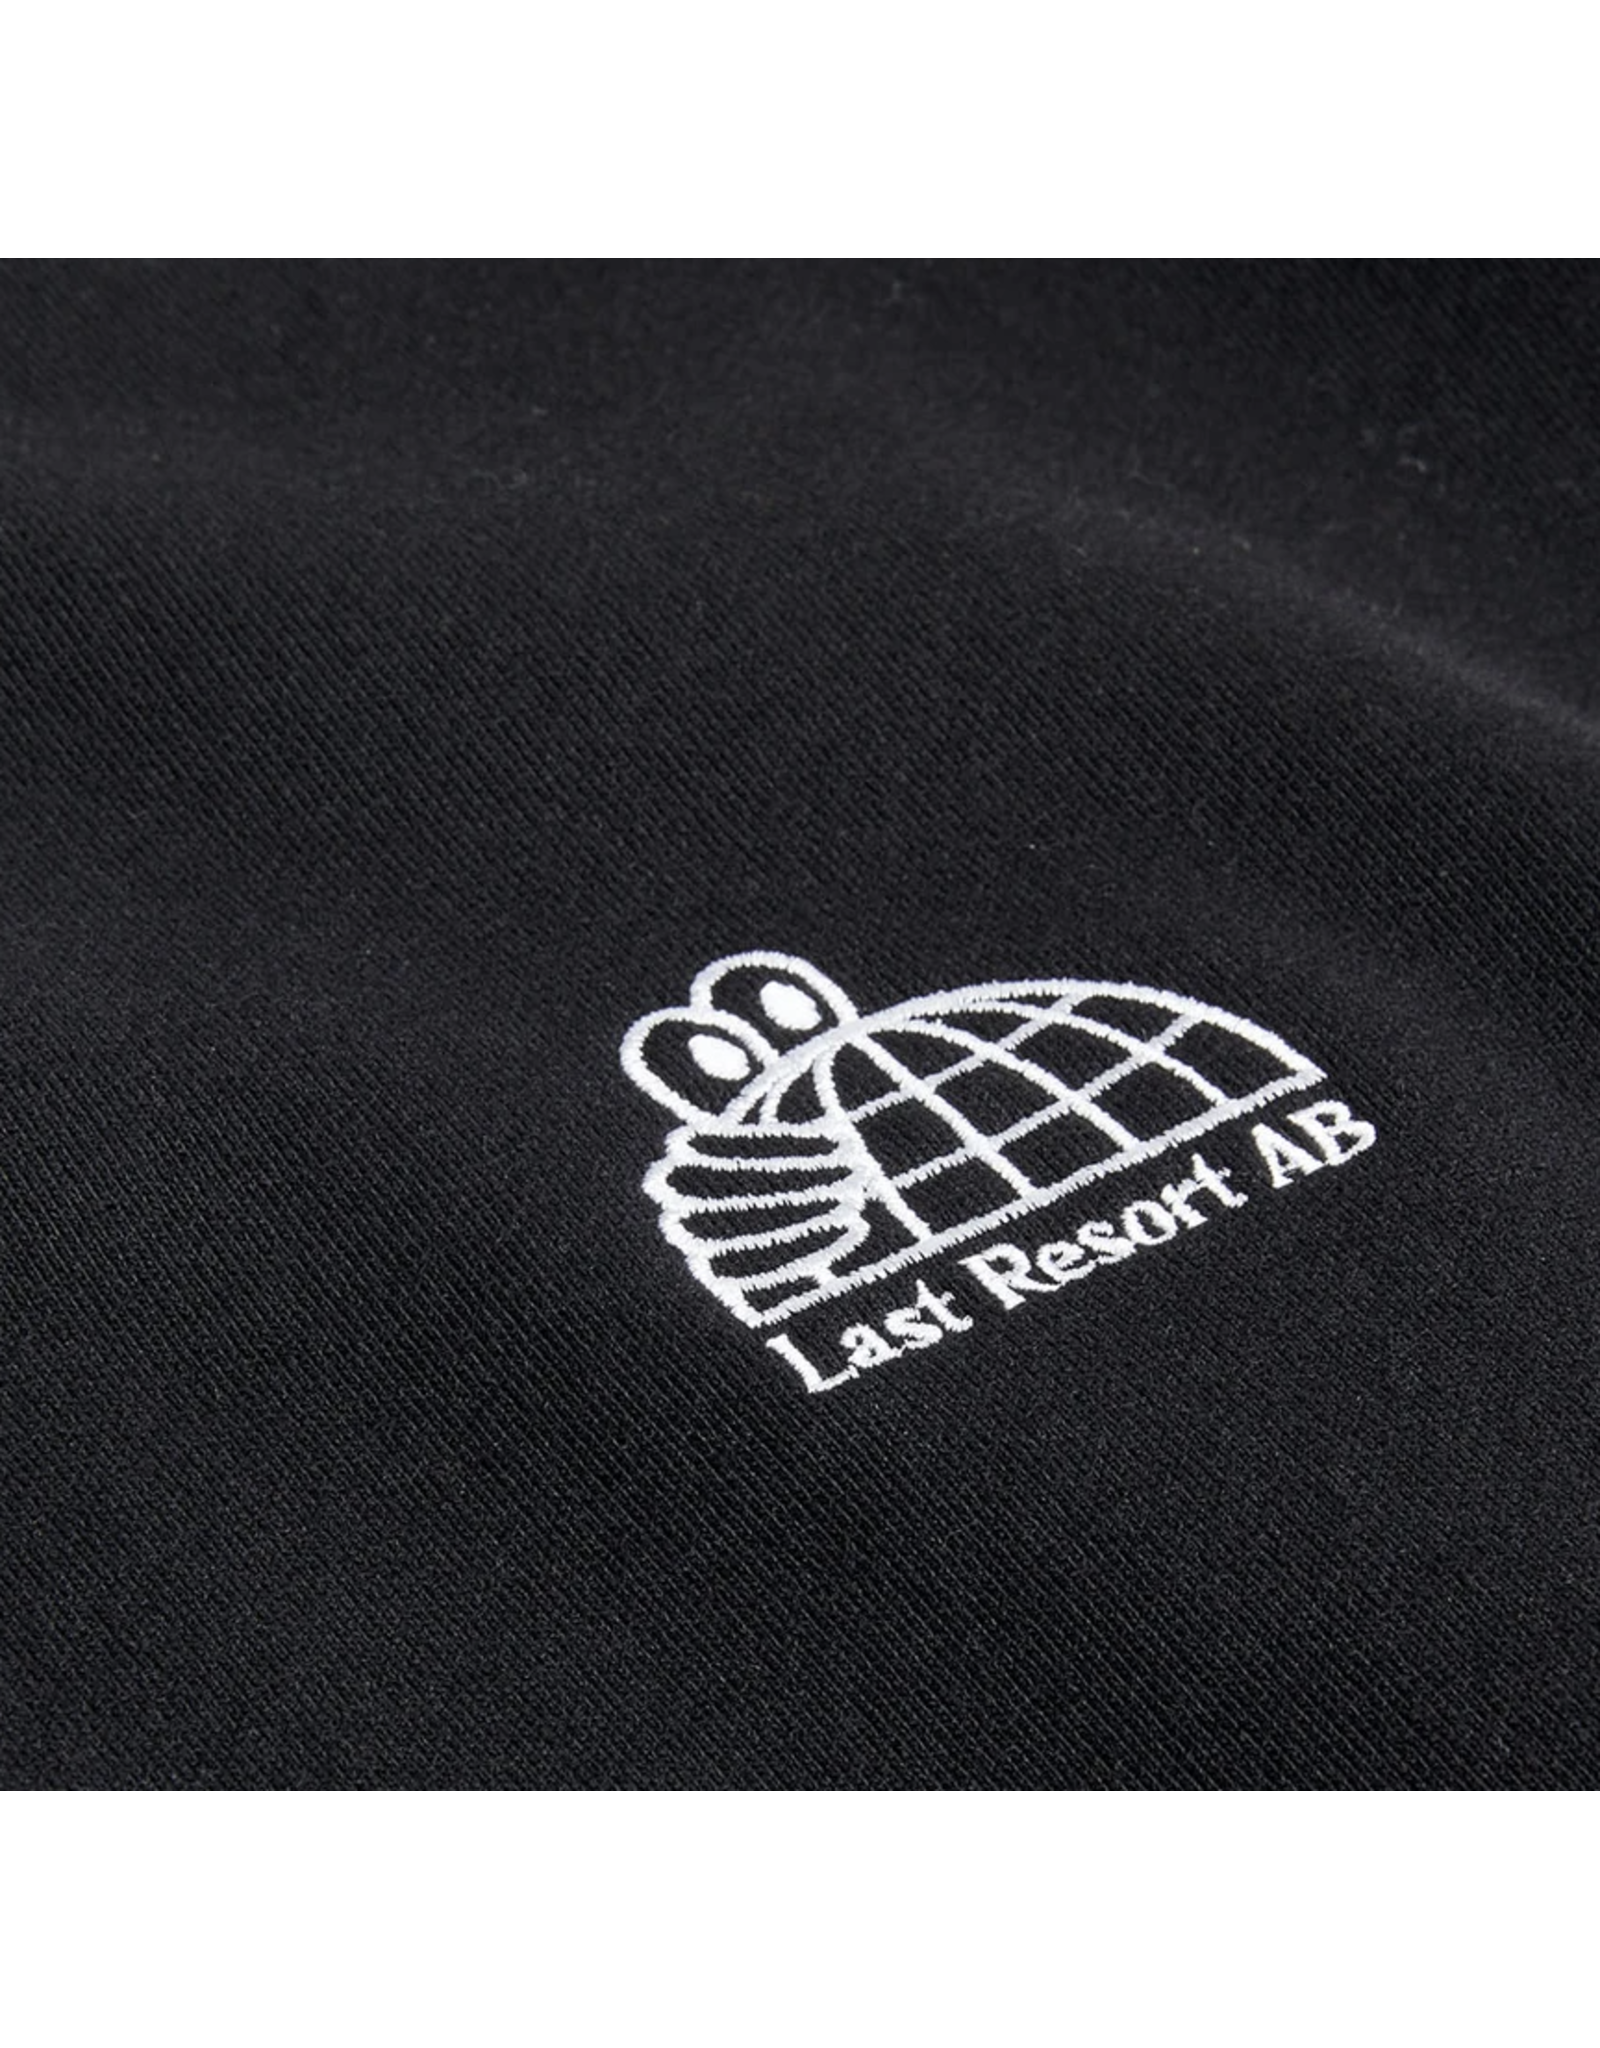 Last Resort AB Half Globe Crewneck - Black